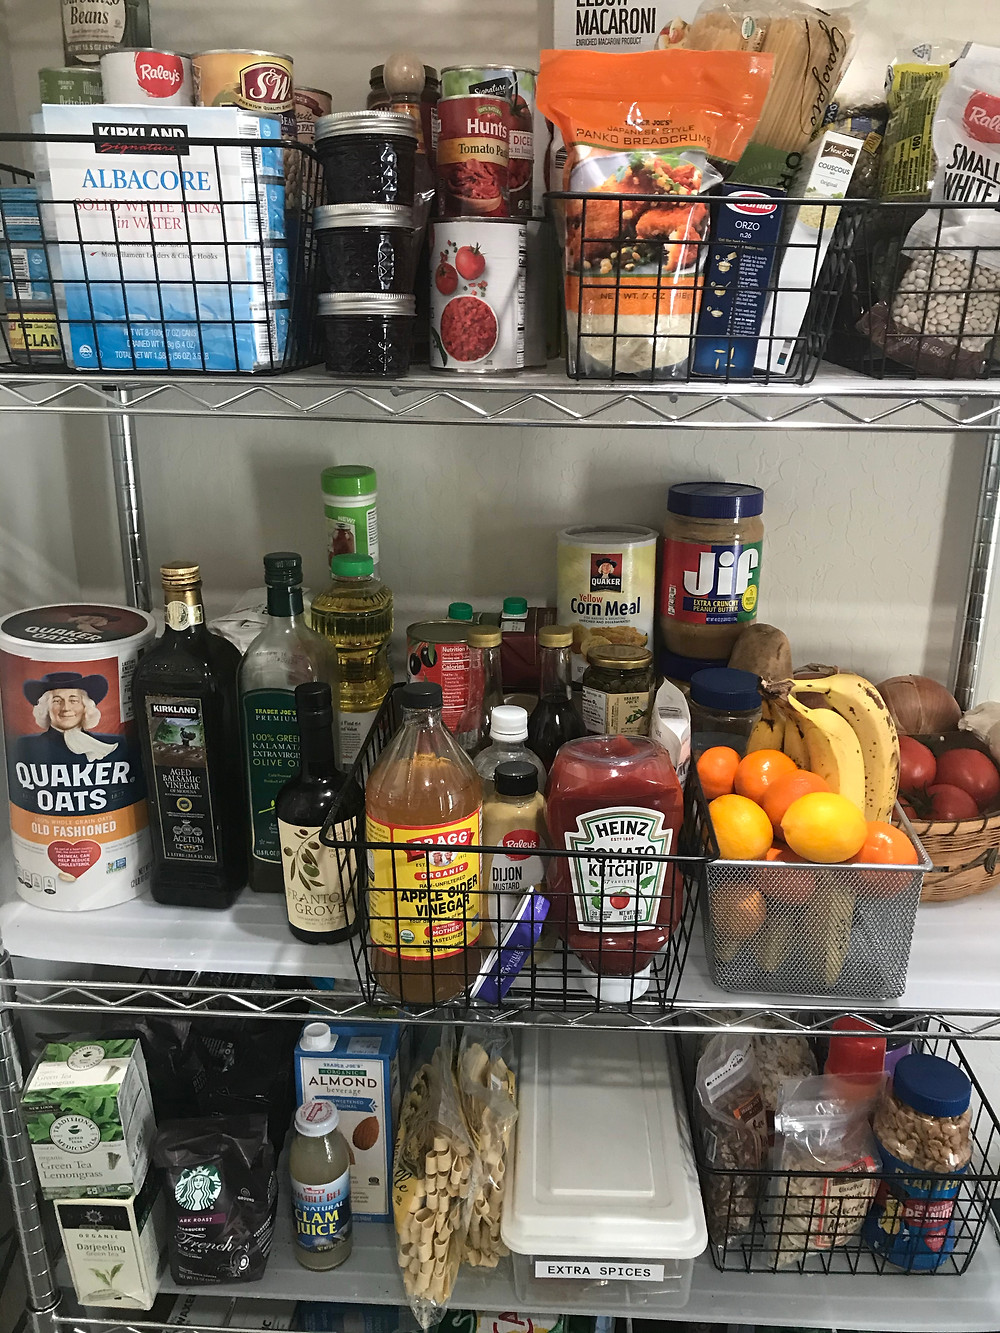 Bonnie's inventory is the quintessence of a well-stocked pantry